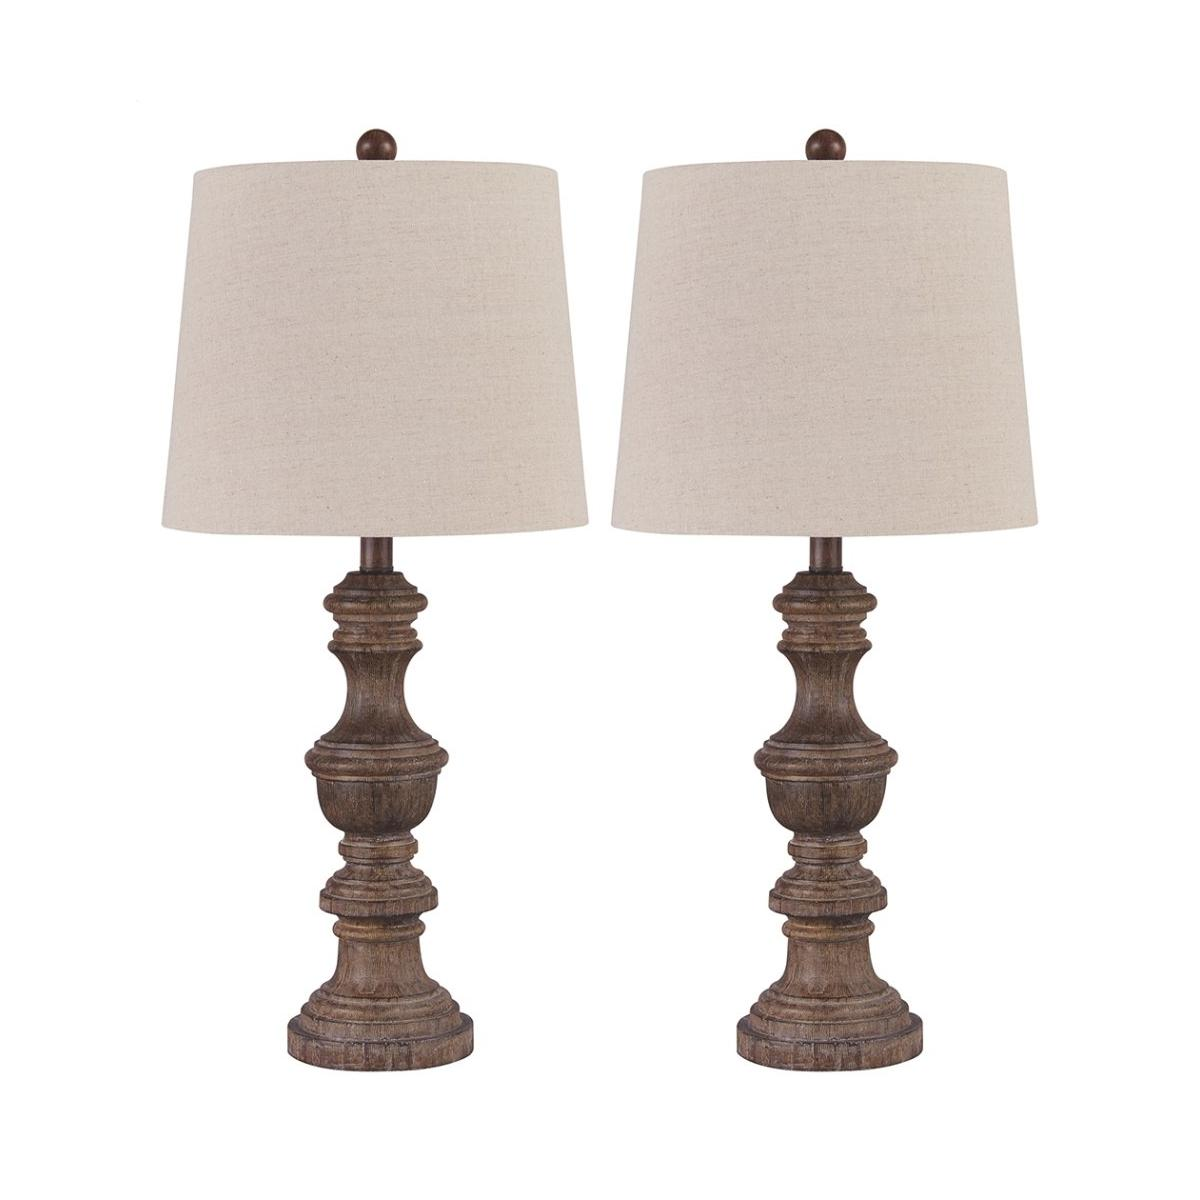 Magaly Table Lamp (set of 2)